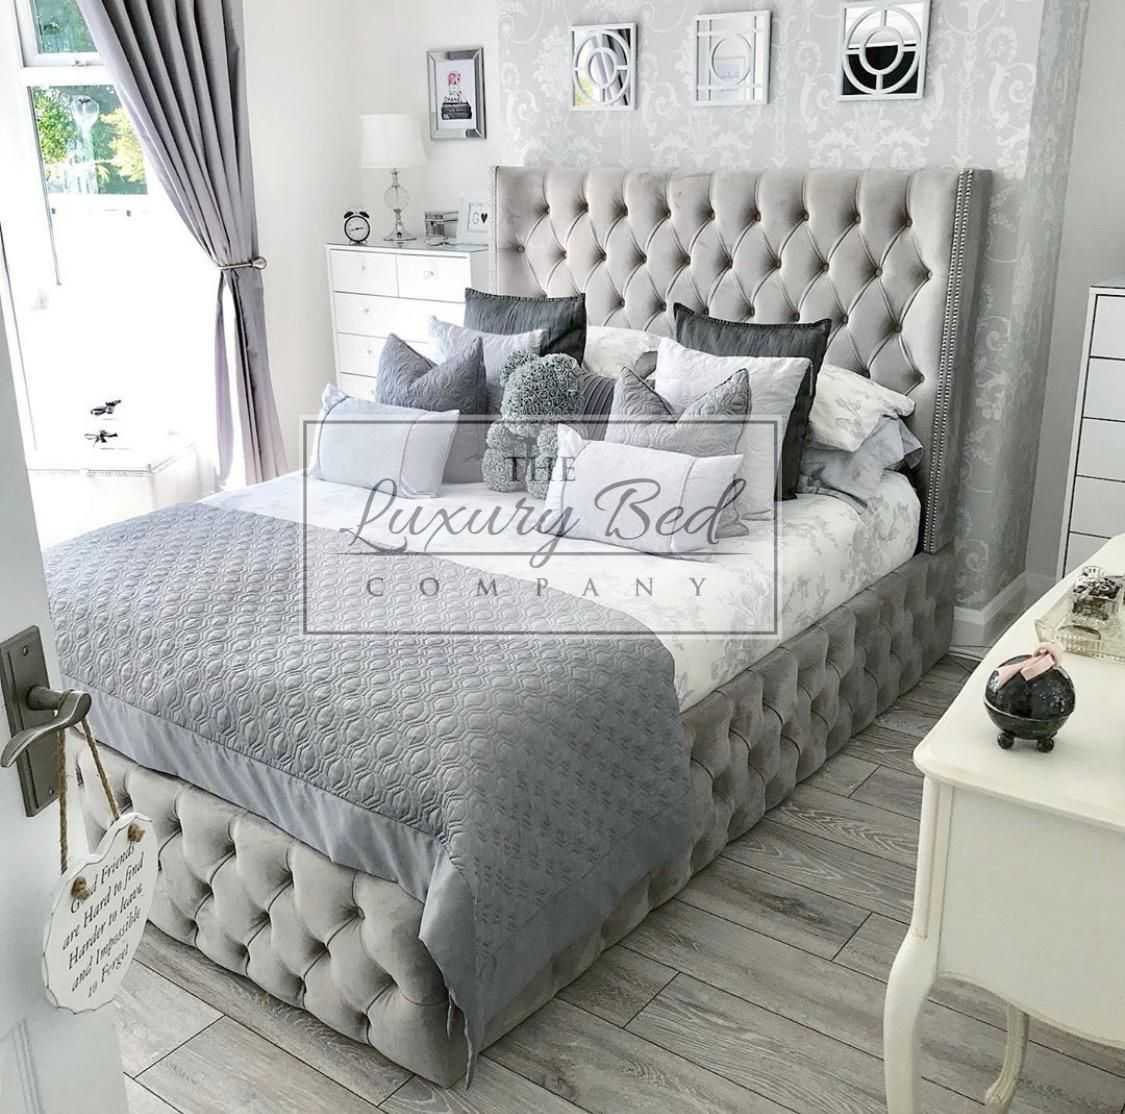 Best Sellers The Luxury Bed Company Bed Frame With Storage